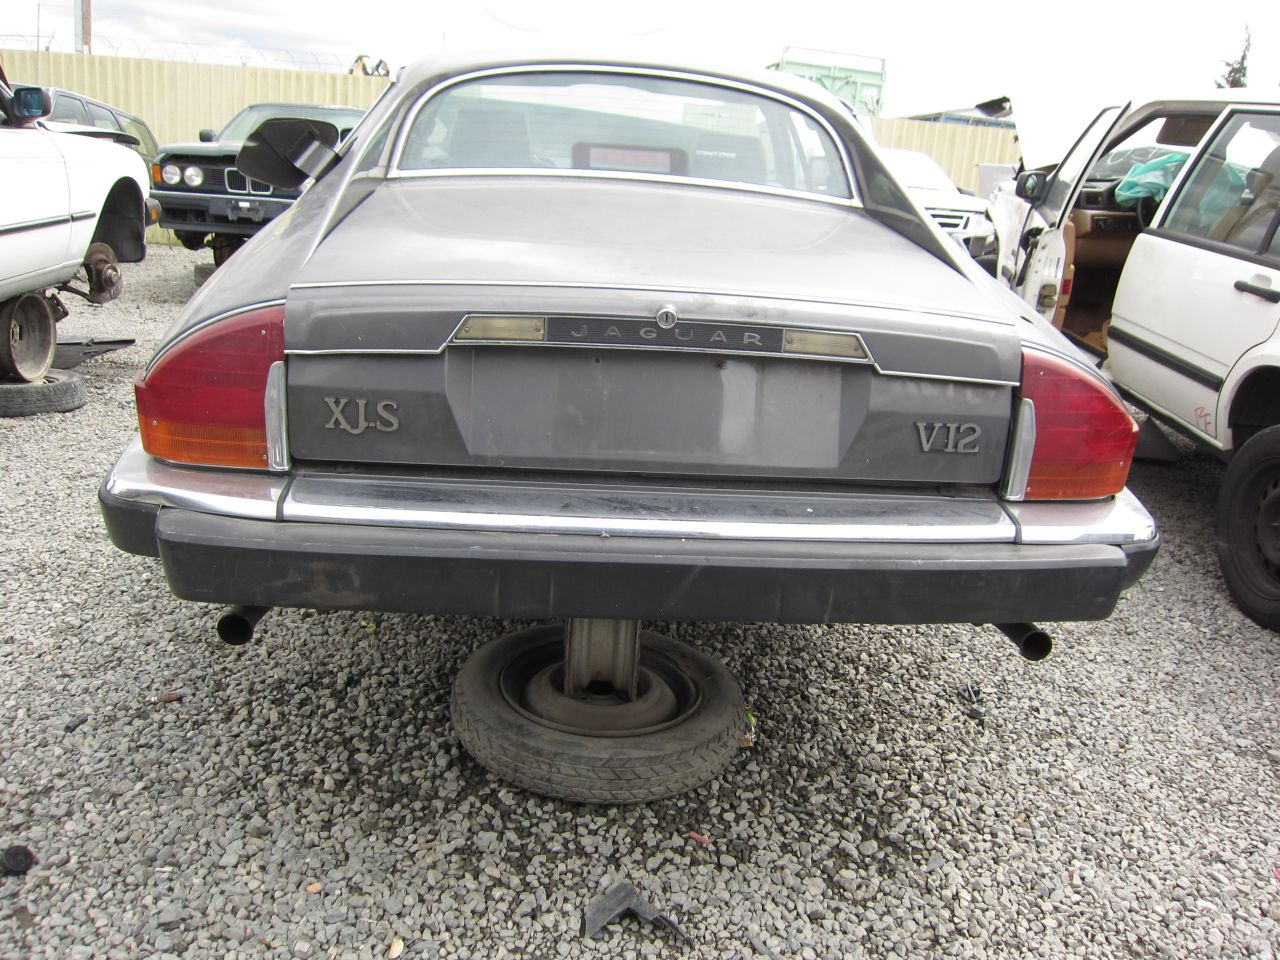 Junkyard Find 1987 Jaguar Xj S The Truth About Cars 2005 Xj8 Specs Hell Even Buying One Worth Of New 87 Chevettes Ie Seven Youd Have Held On To More Your Investment Today Scrap Value A